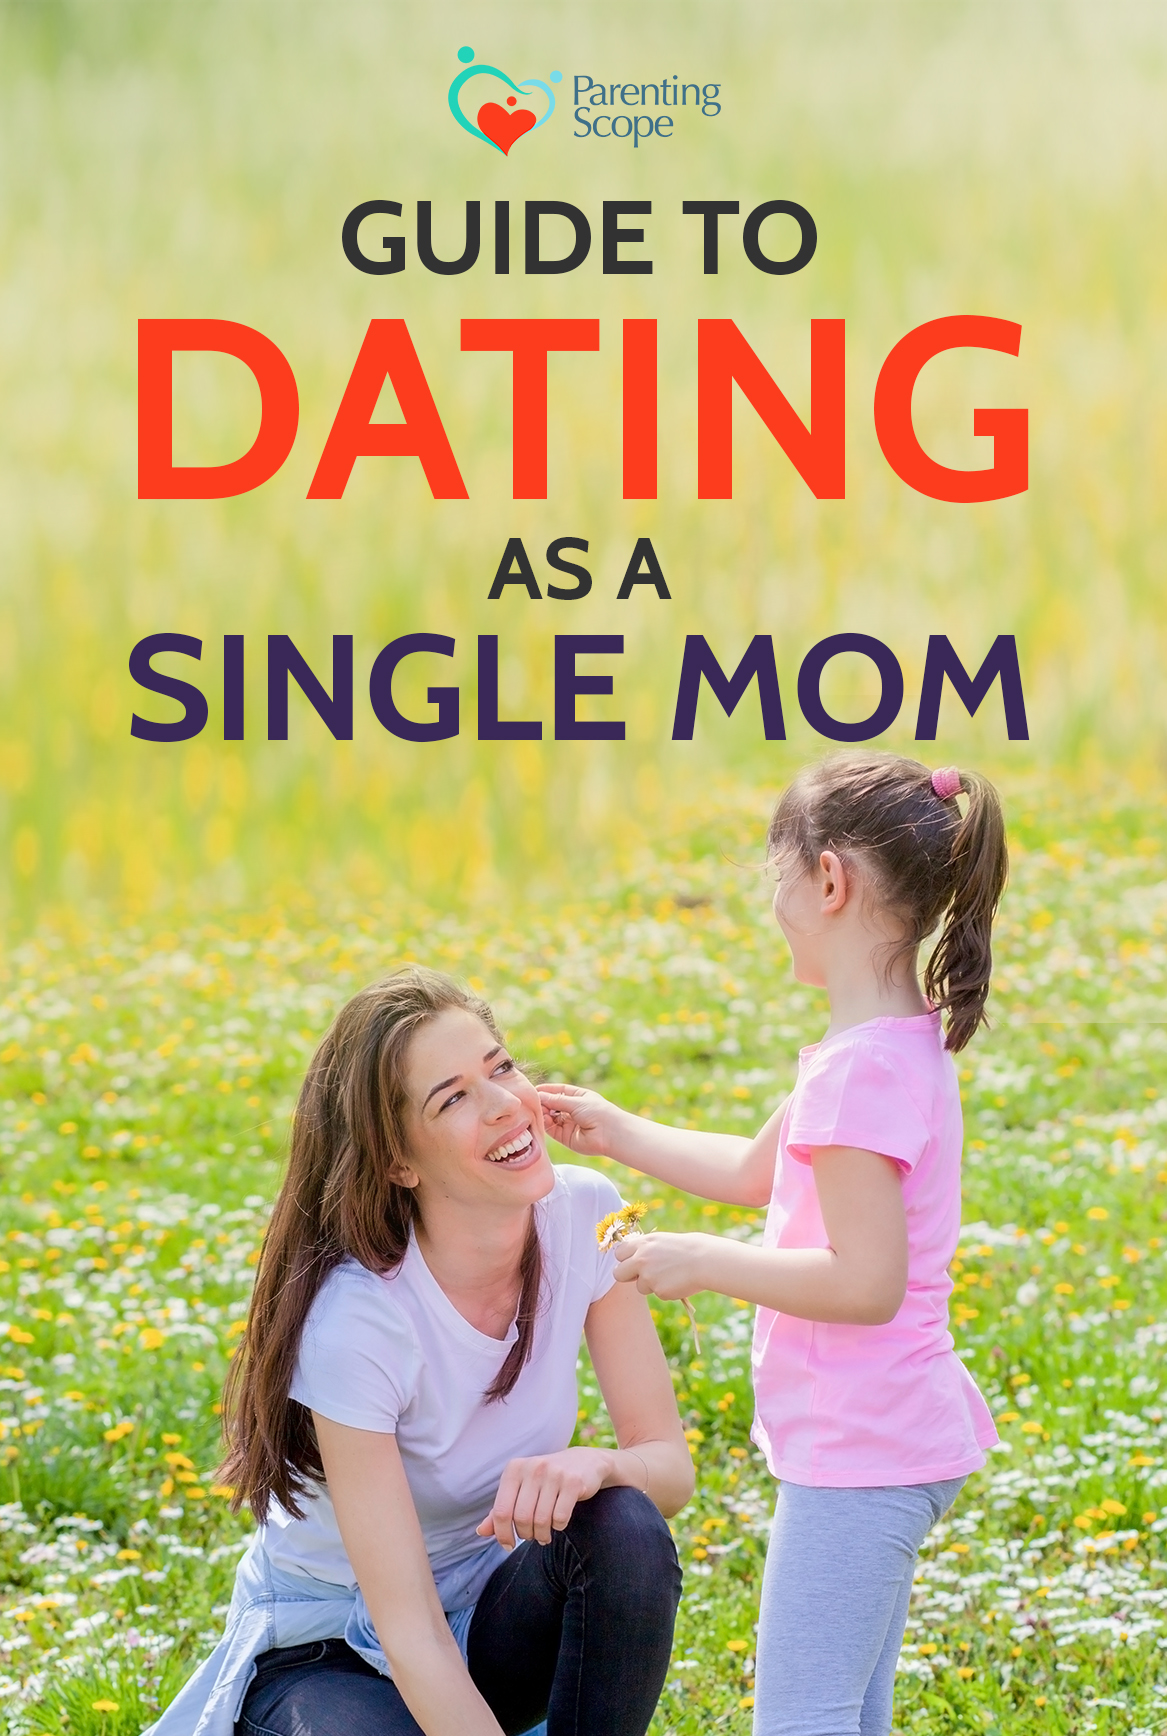 single mother dating rules Rules for dating a single mother these moms tell us what their rules are for dating now that rules for dating a single mother they are singlei have been behaving like a damned scoundrel, he saidthus the ninth century saw a rationalist and a pantheist at the court of a christian king.